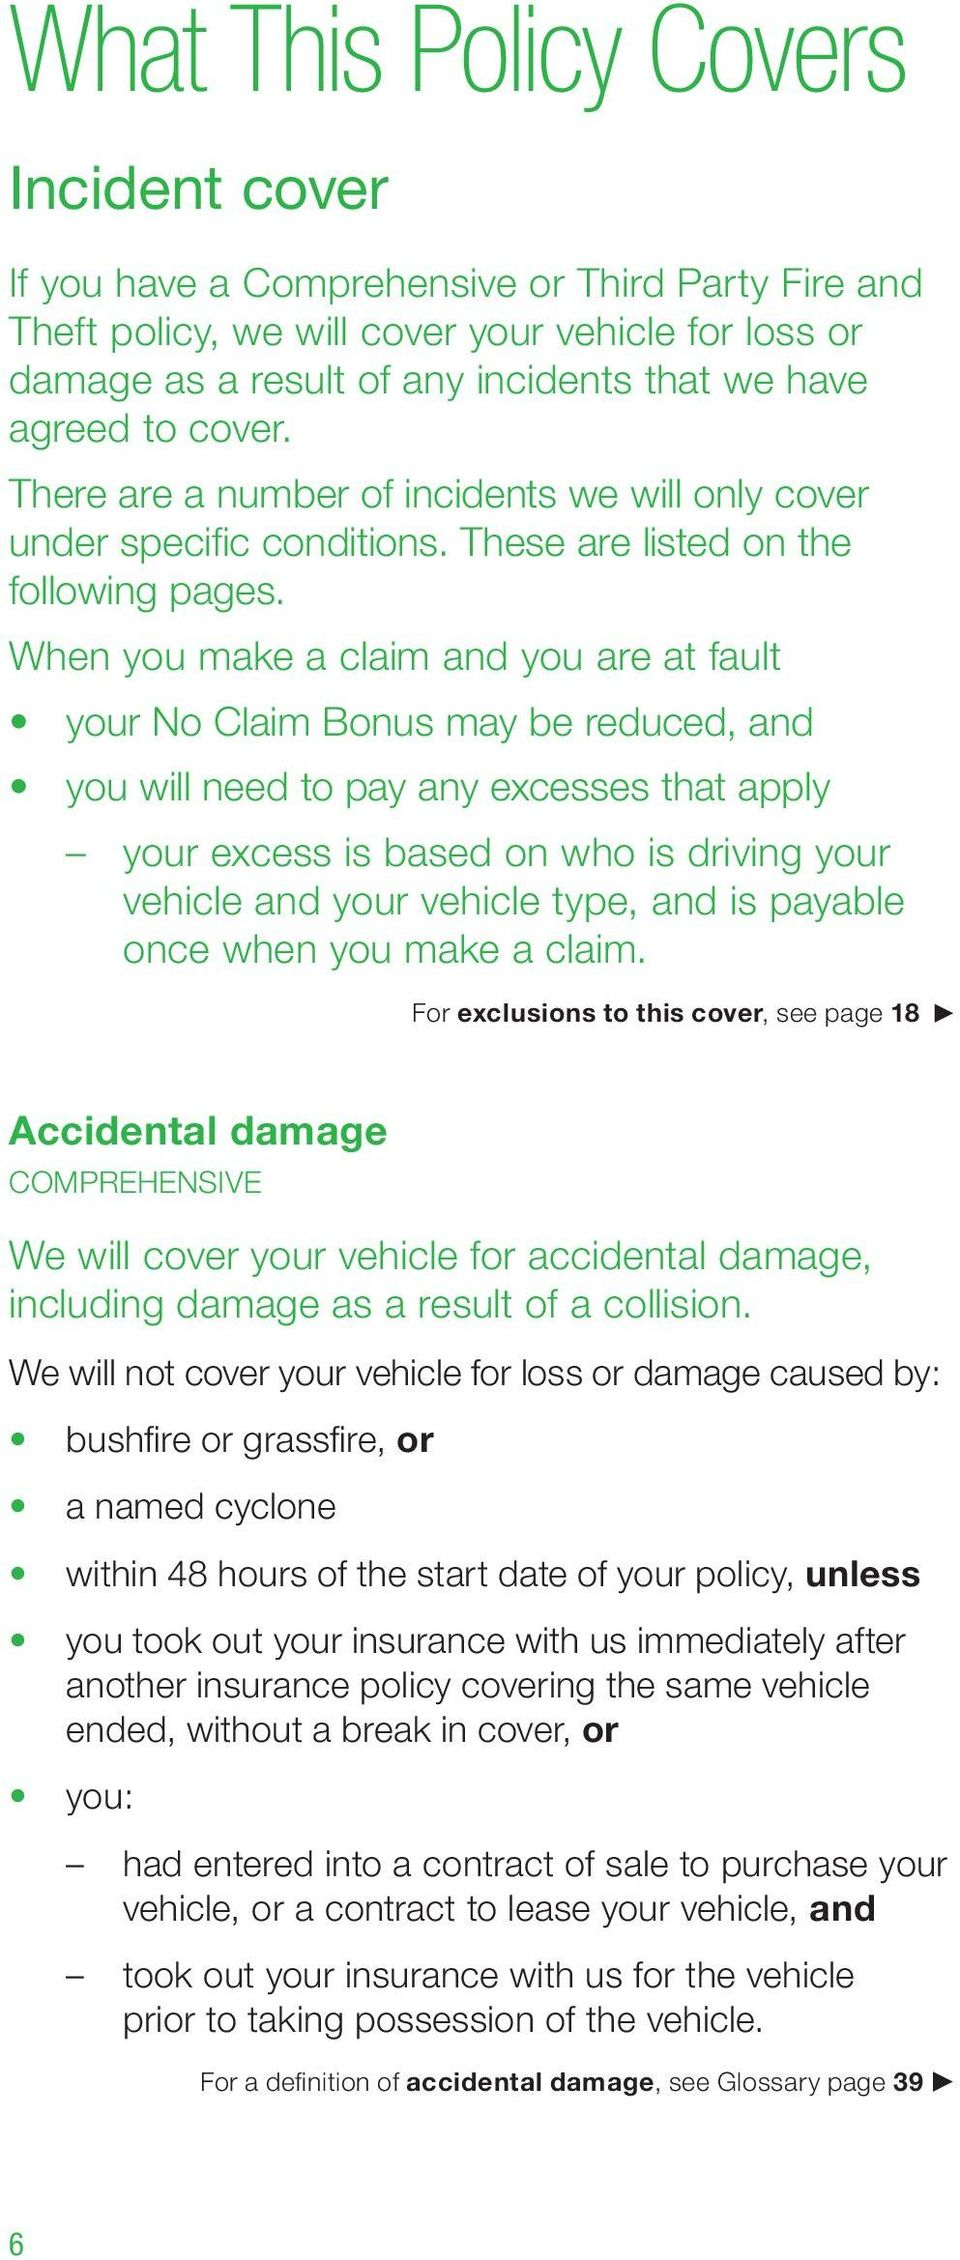 When you make a claim and you are at fault your No Claim Bonus may be reduced, and you will need to pay any excesses that apply your excess is based on who is driving your vehicle and your vehicle